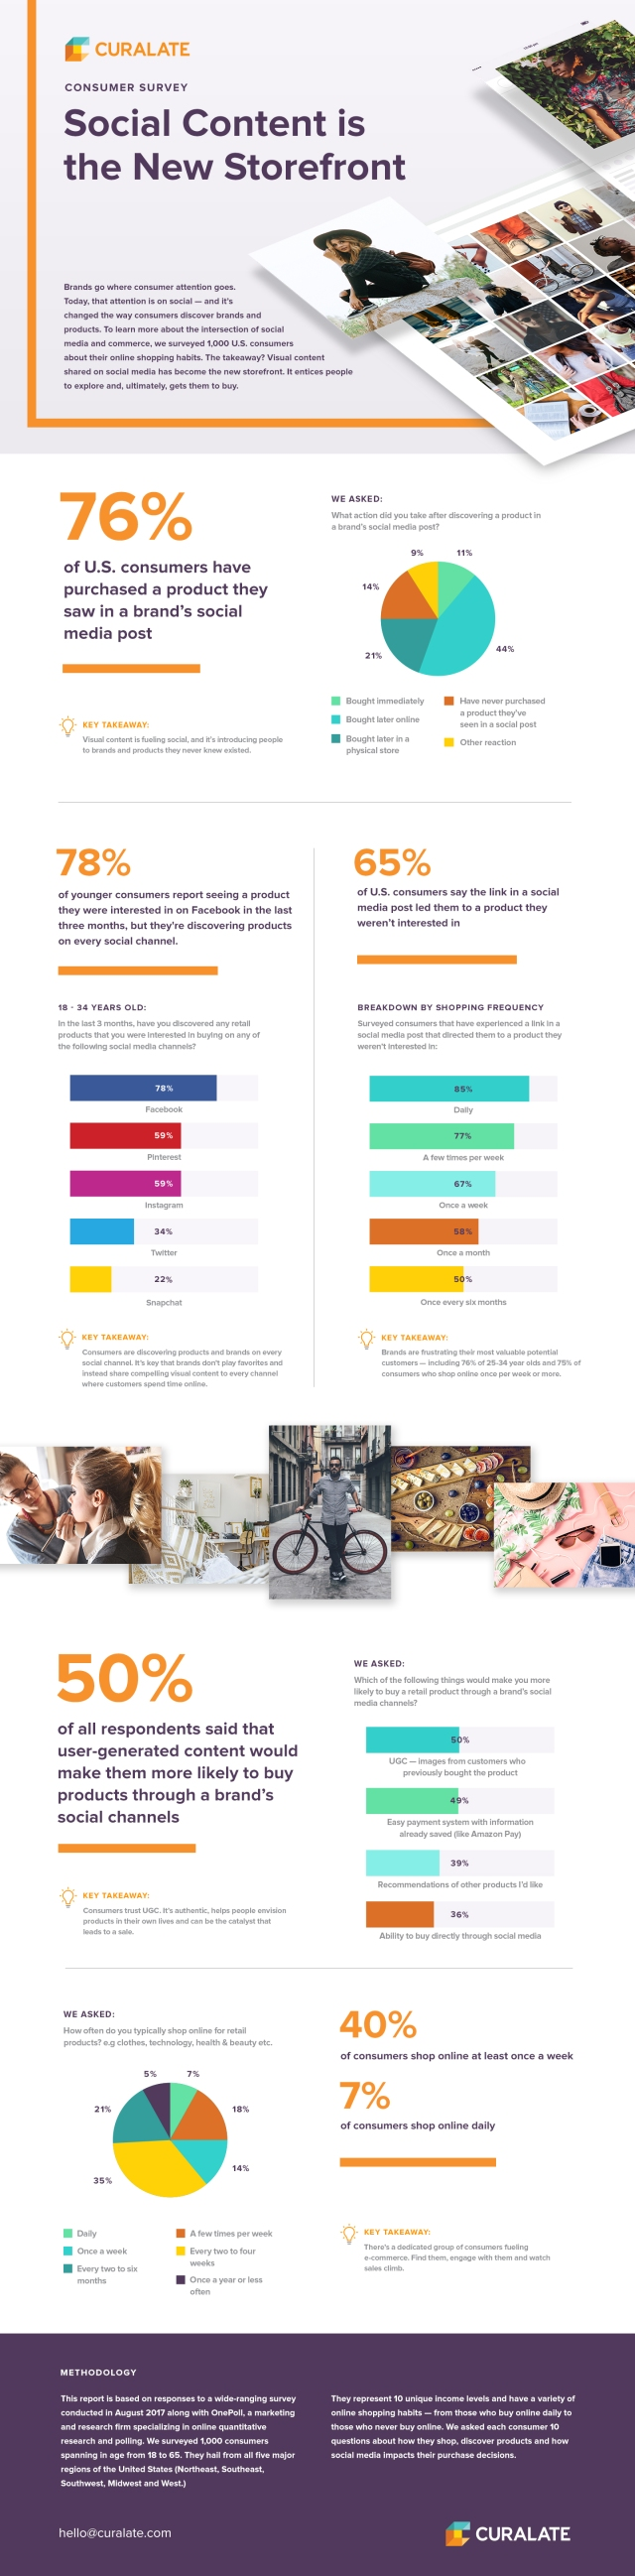 social_is_the_new_storefront_infographic